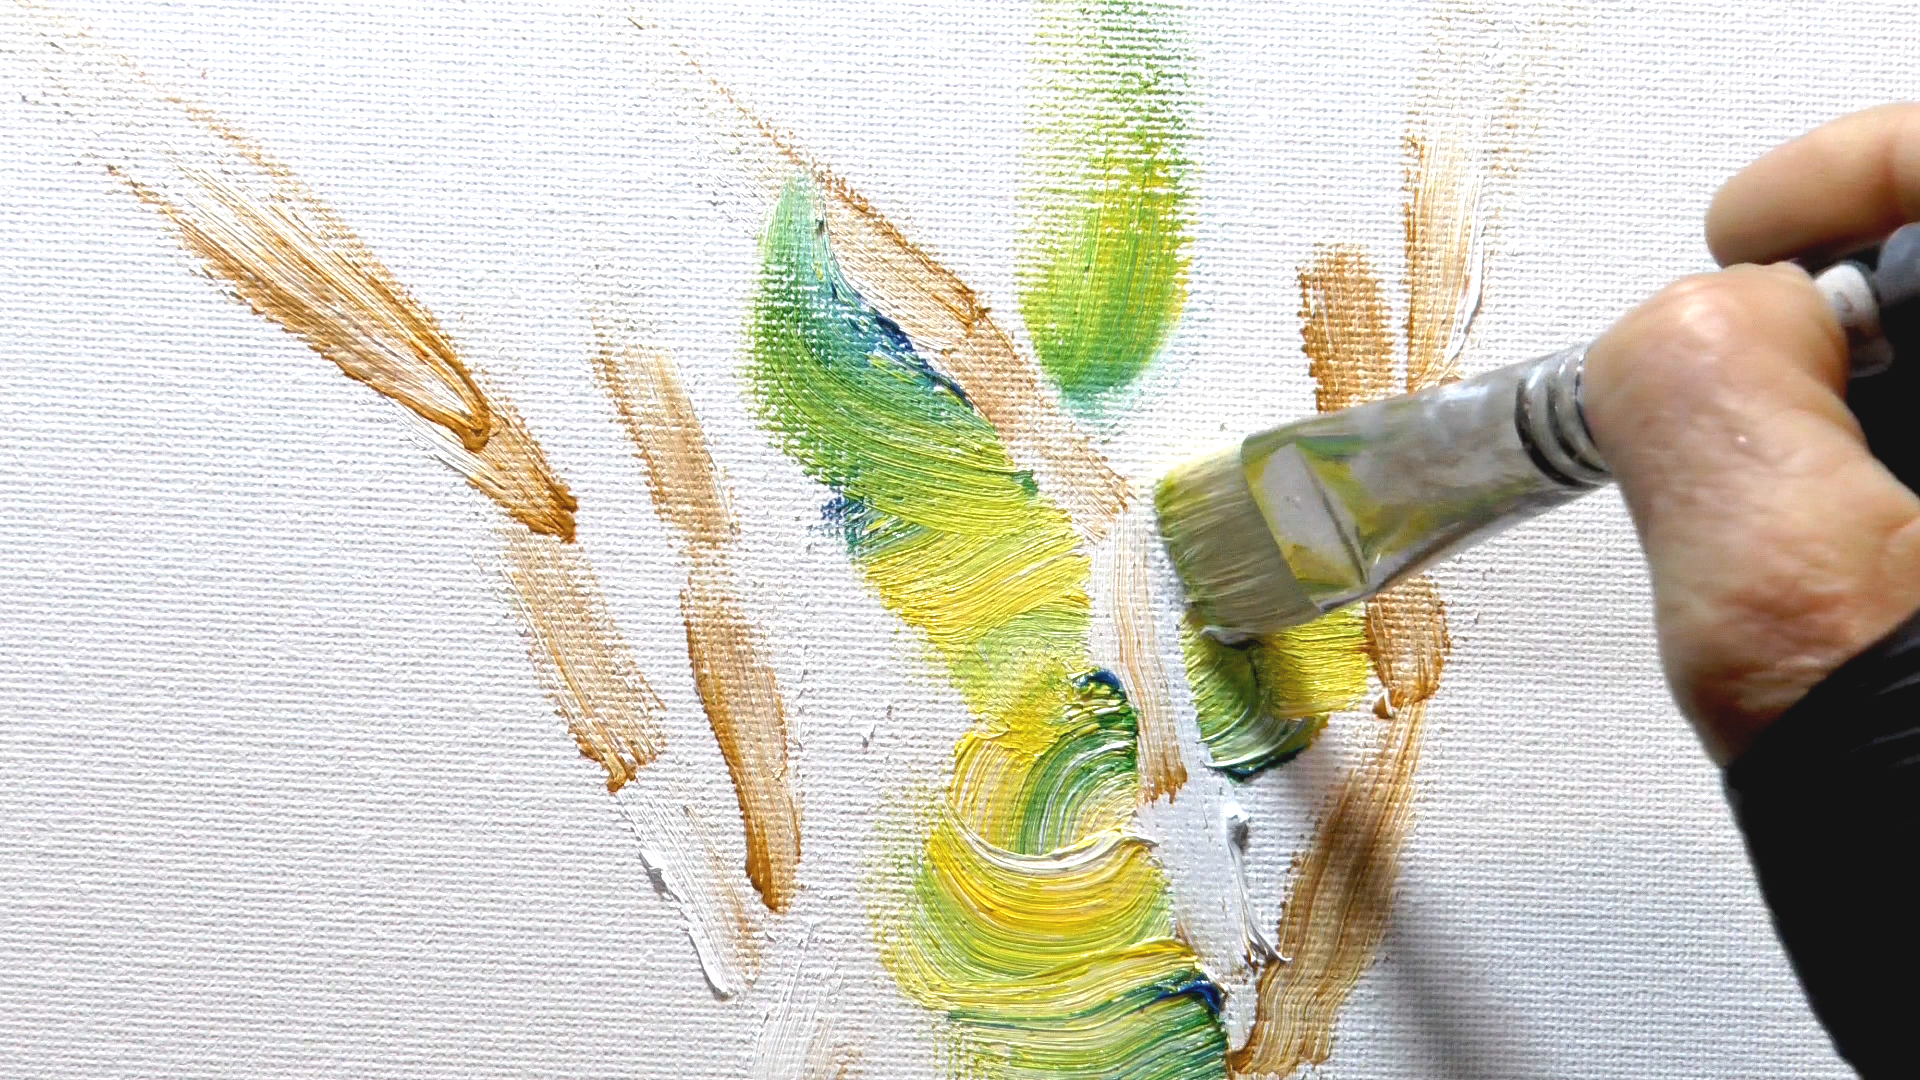 Learn all of the 12 Oil Painting Techniques